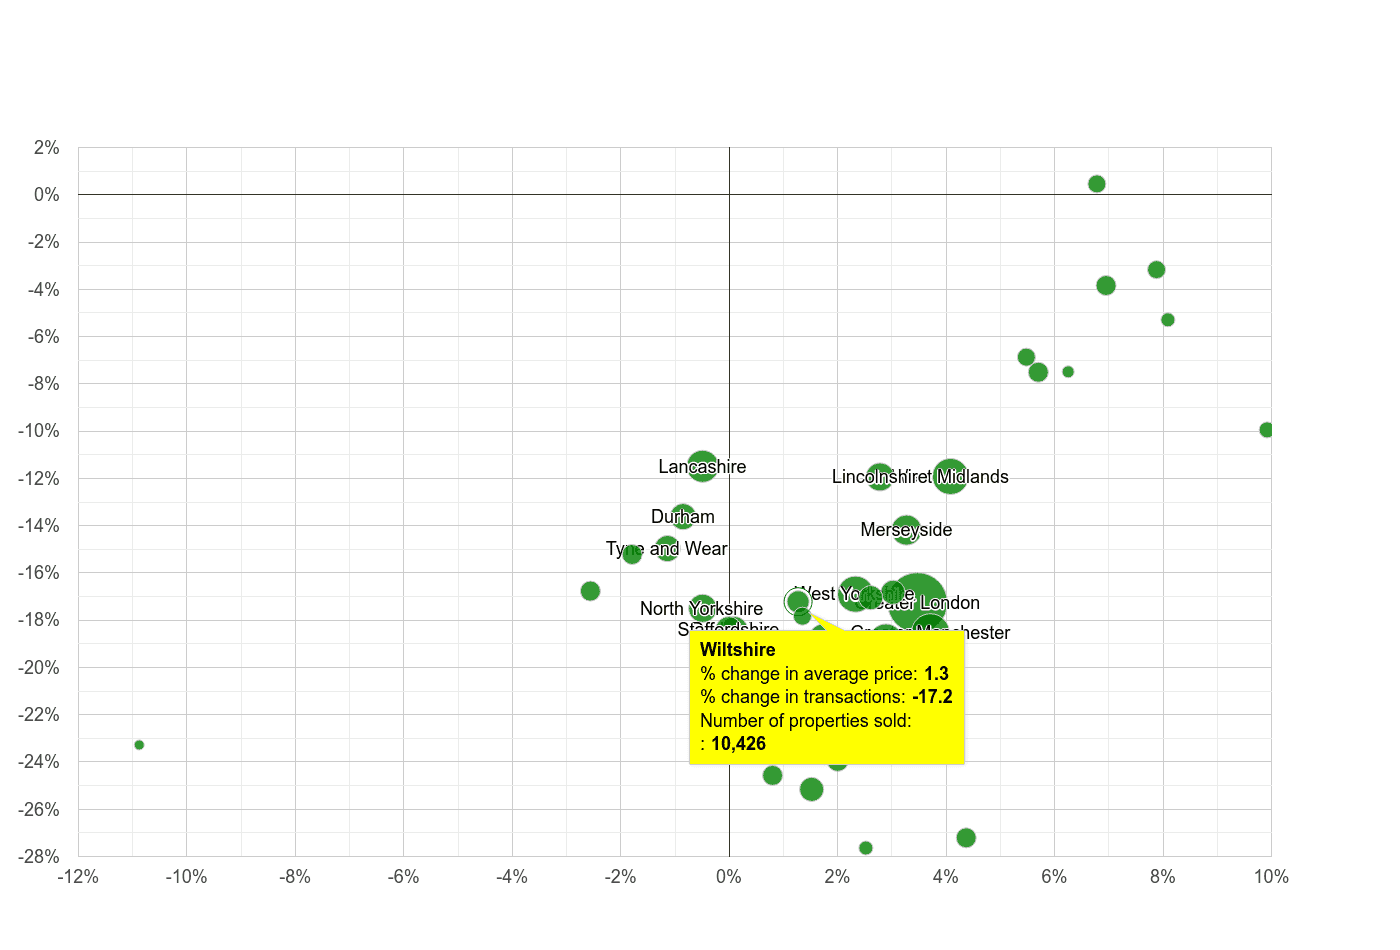 Wiltshire property price and sales volume change relative to other counties